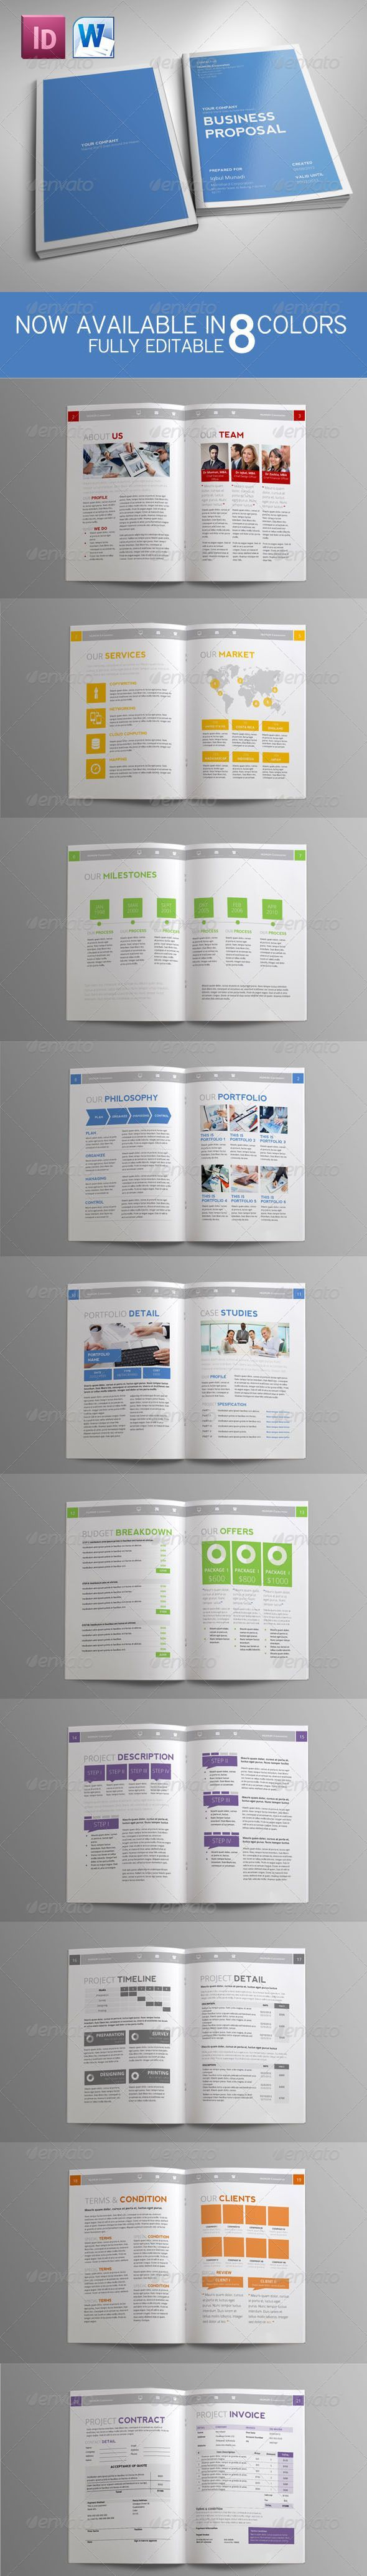 Commercial Proposal Format Alluring 20 Best Business Propocal Images On Pinterest  Editorial Design .